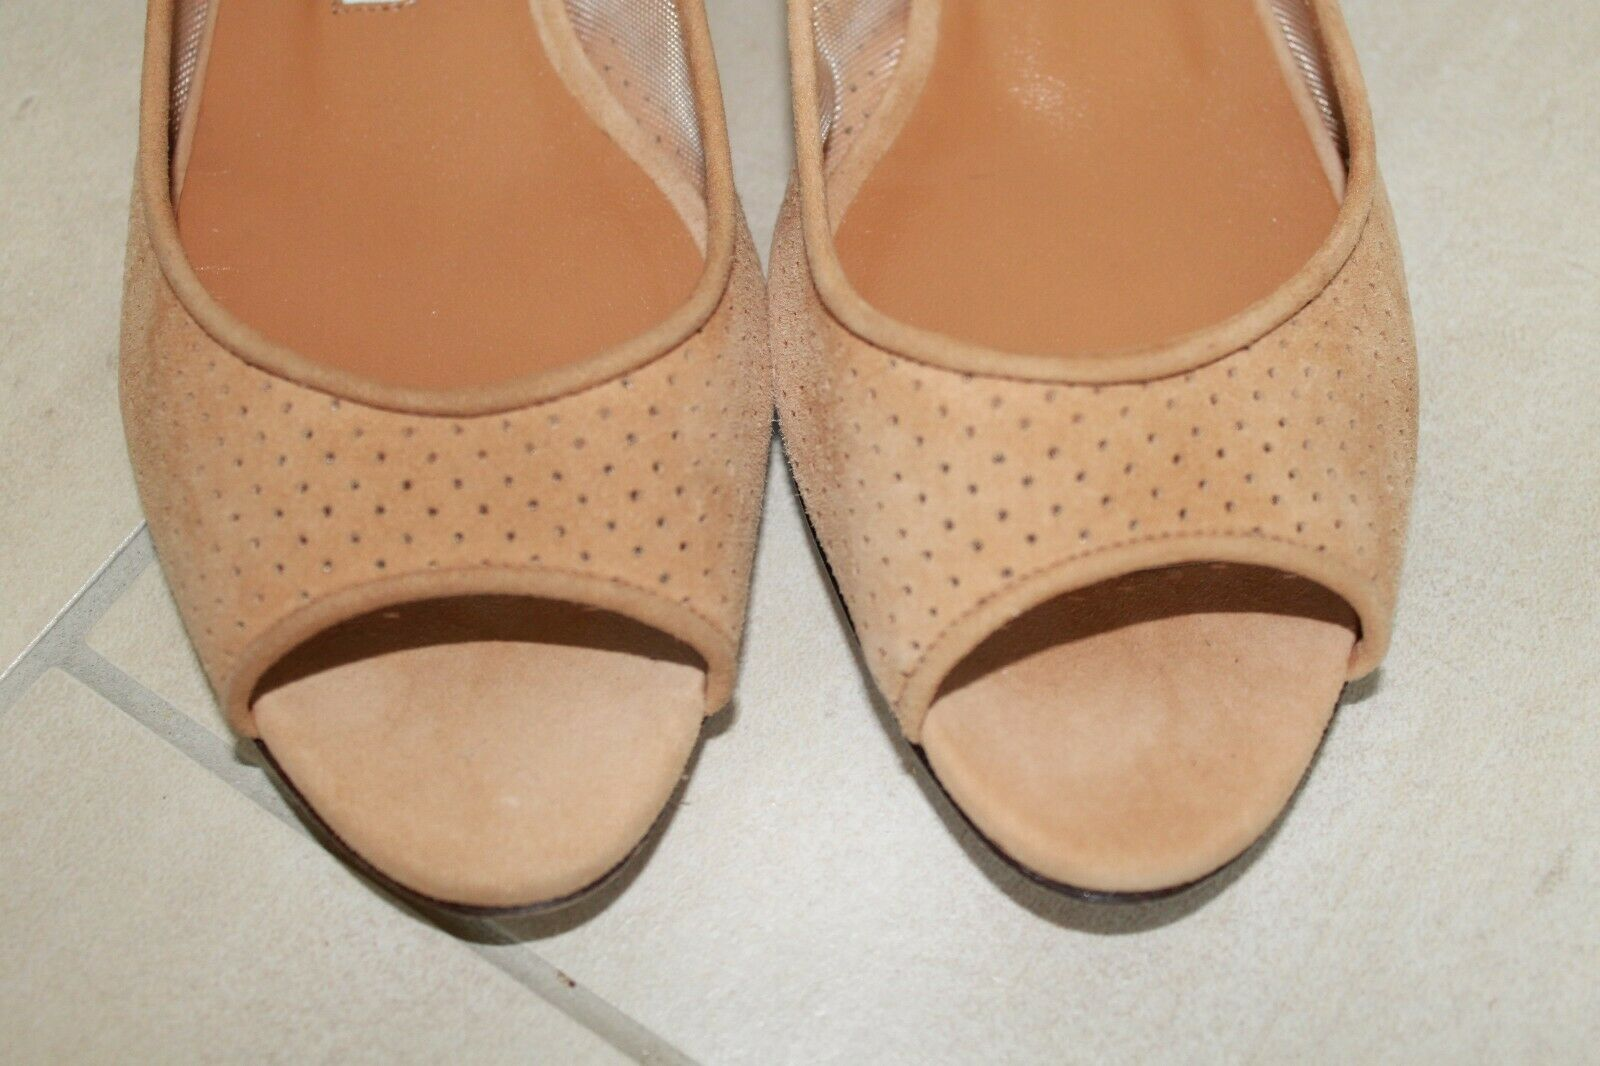 825 NEW MANOLO MANOLO MANOLO BLAHNIK Beige Brown Perforated Suede Peep toe Flats SHOES 36.5 6 41d58e